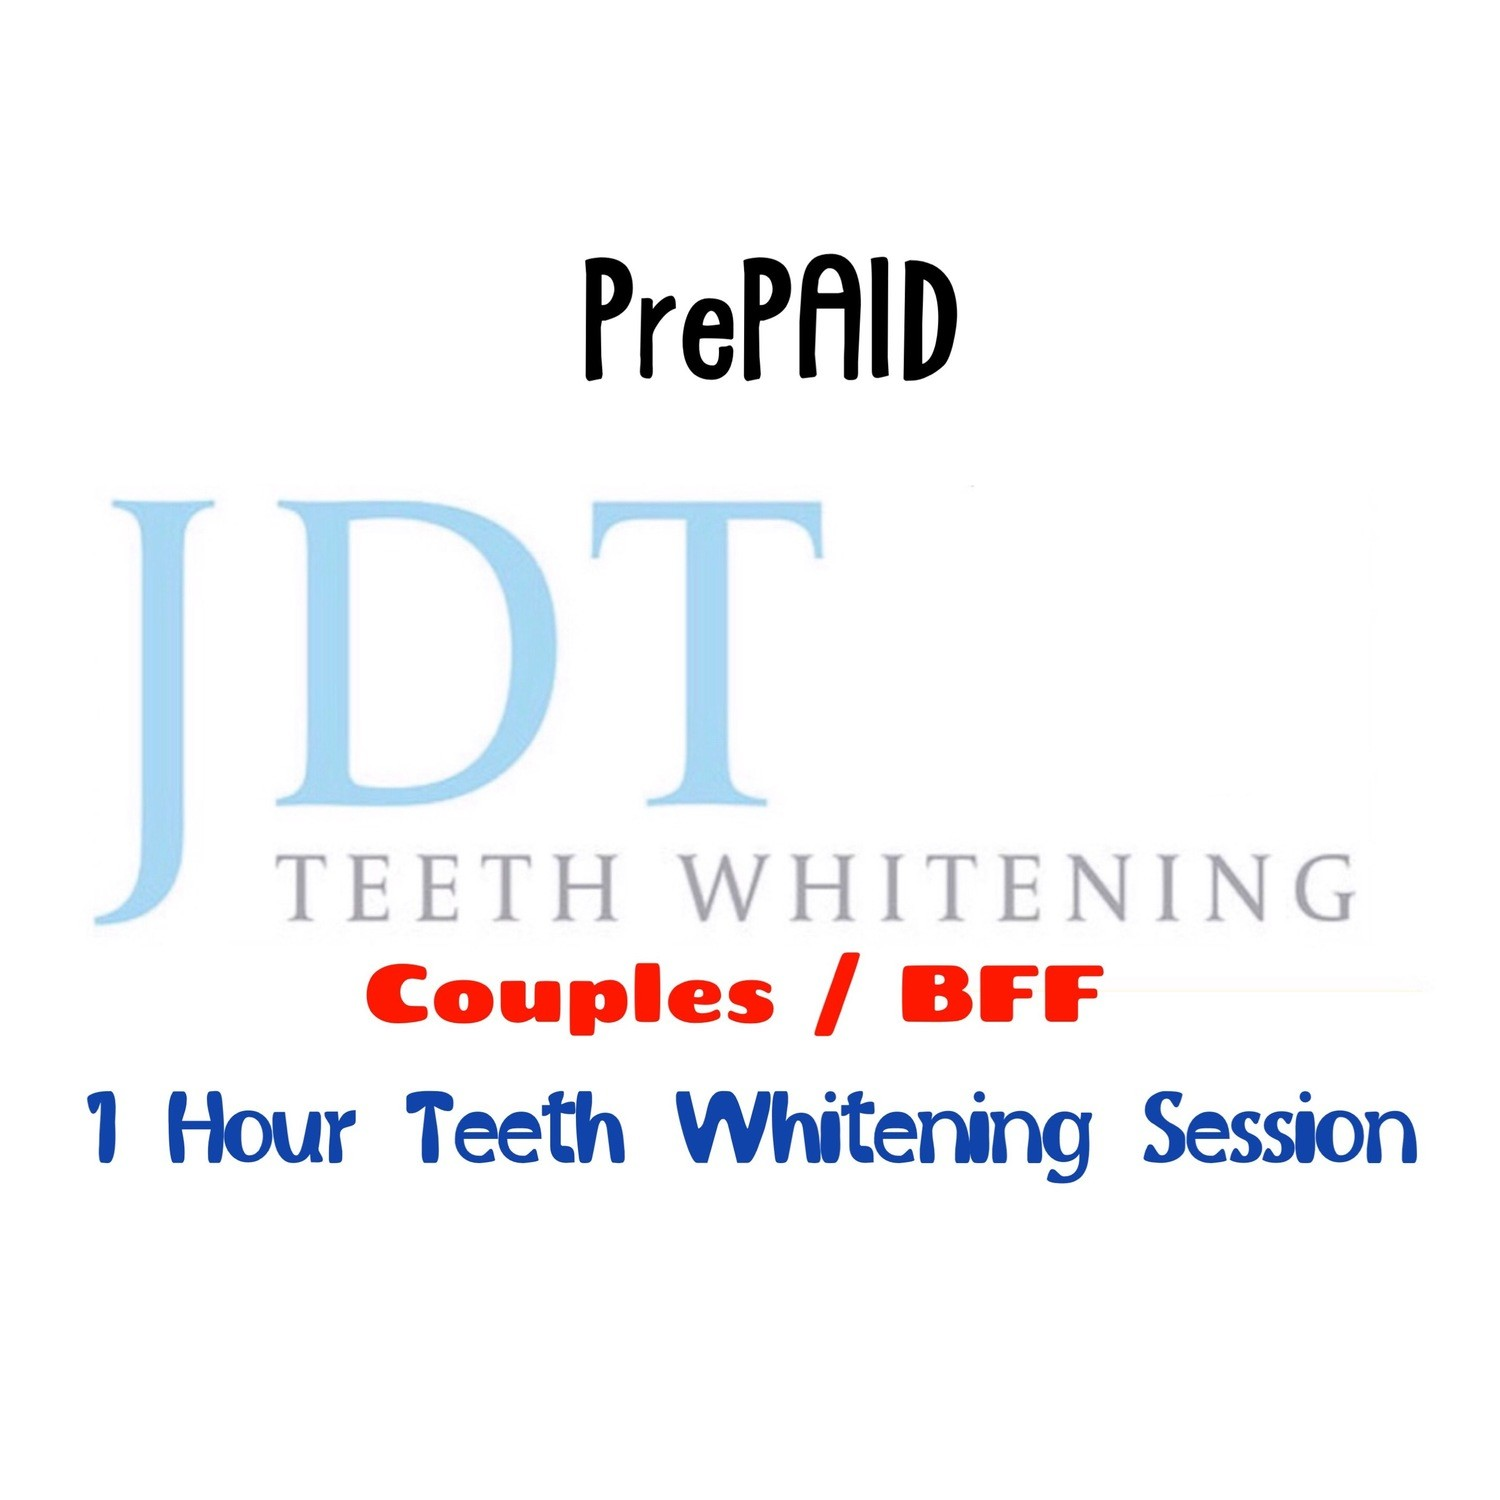 Pre-Paid Couples 1 Hour Teeth Whitening Session Package (2 pack)